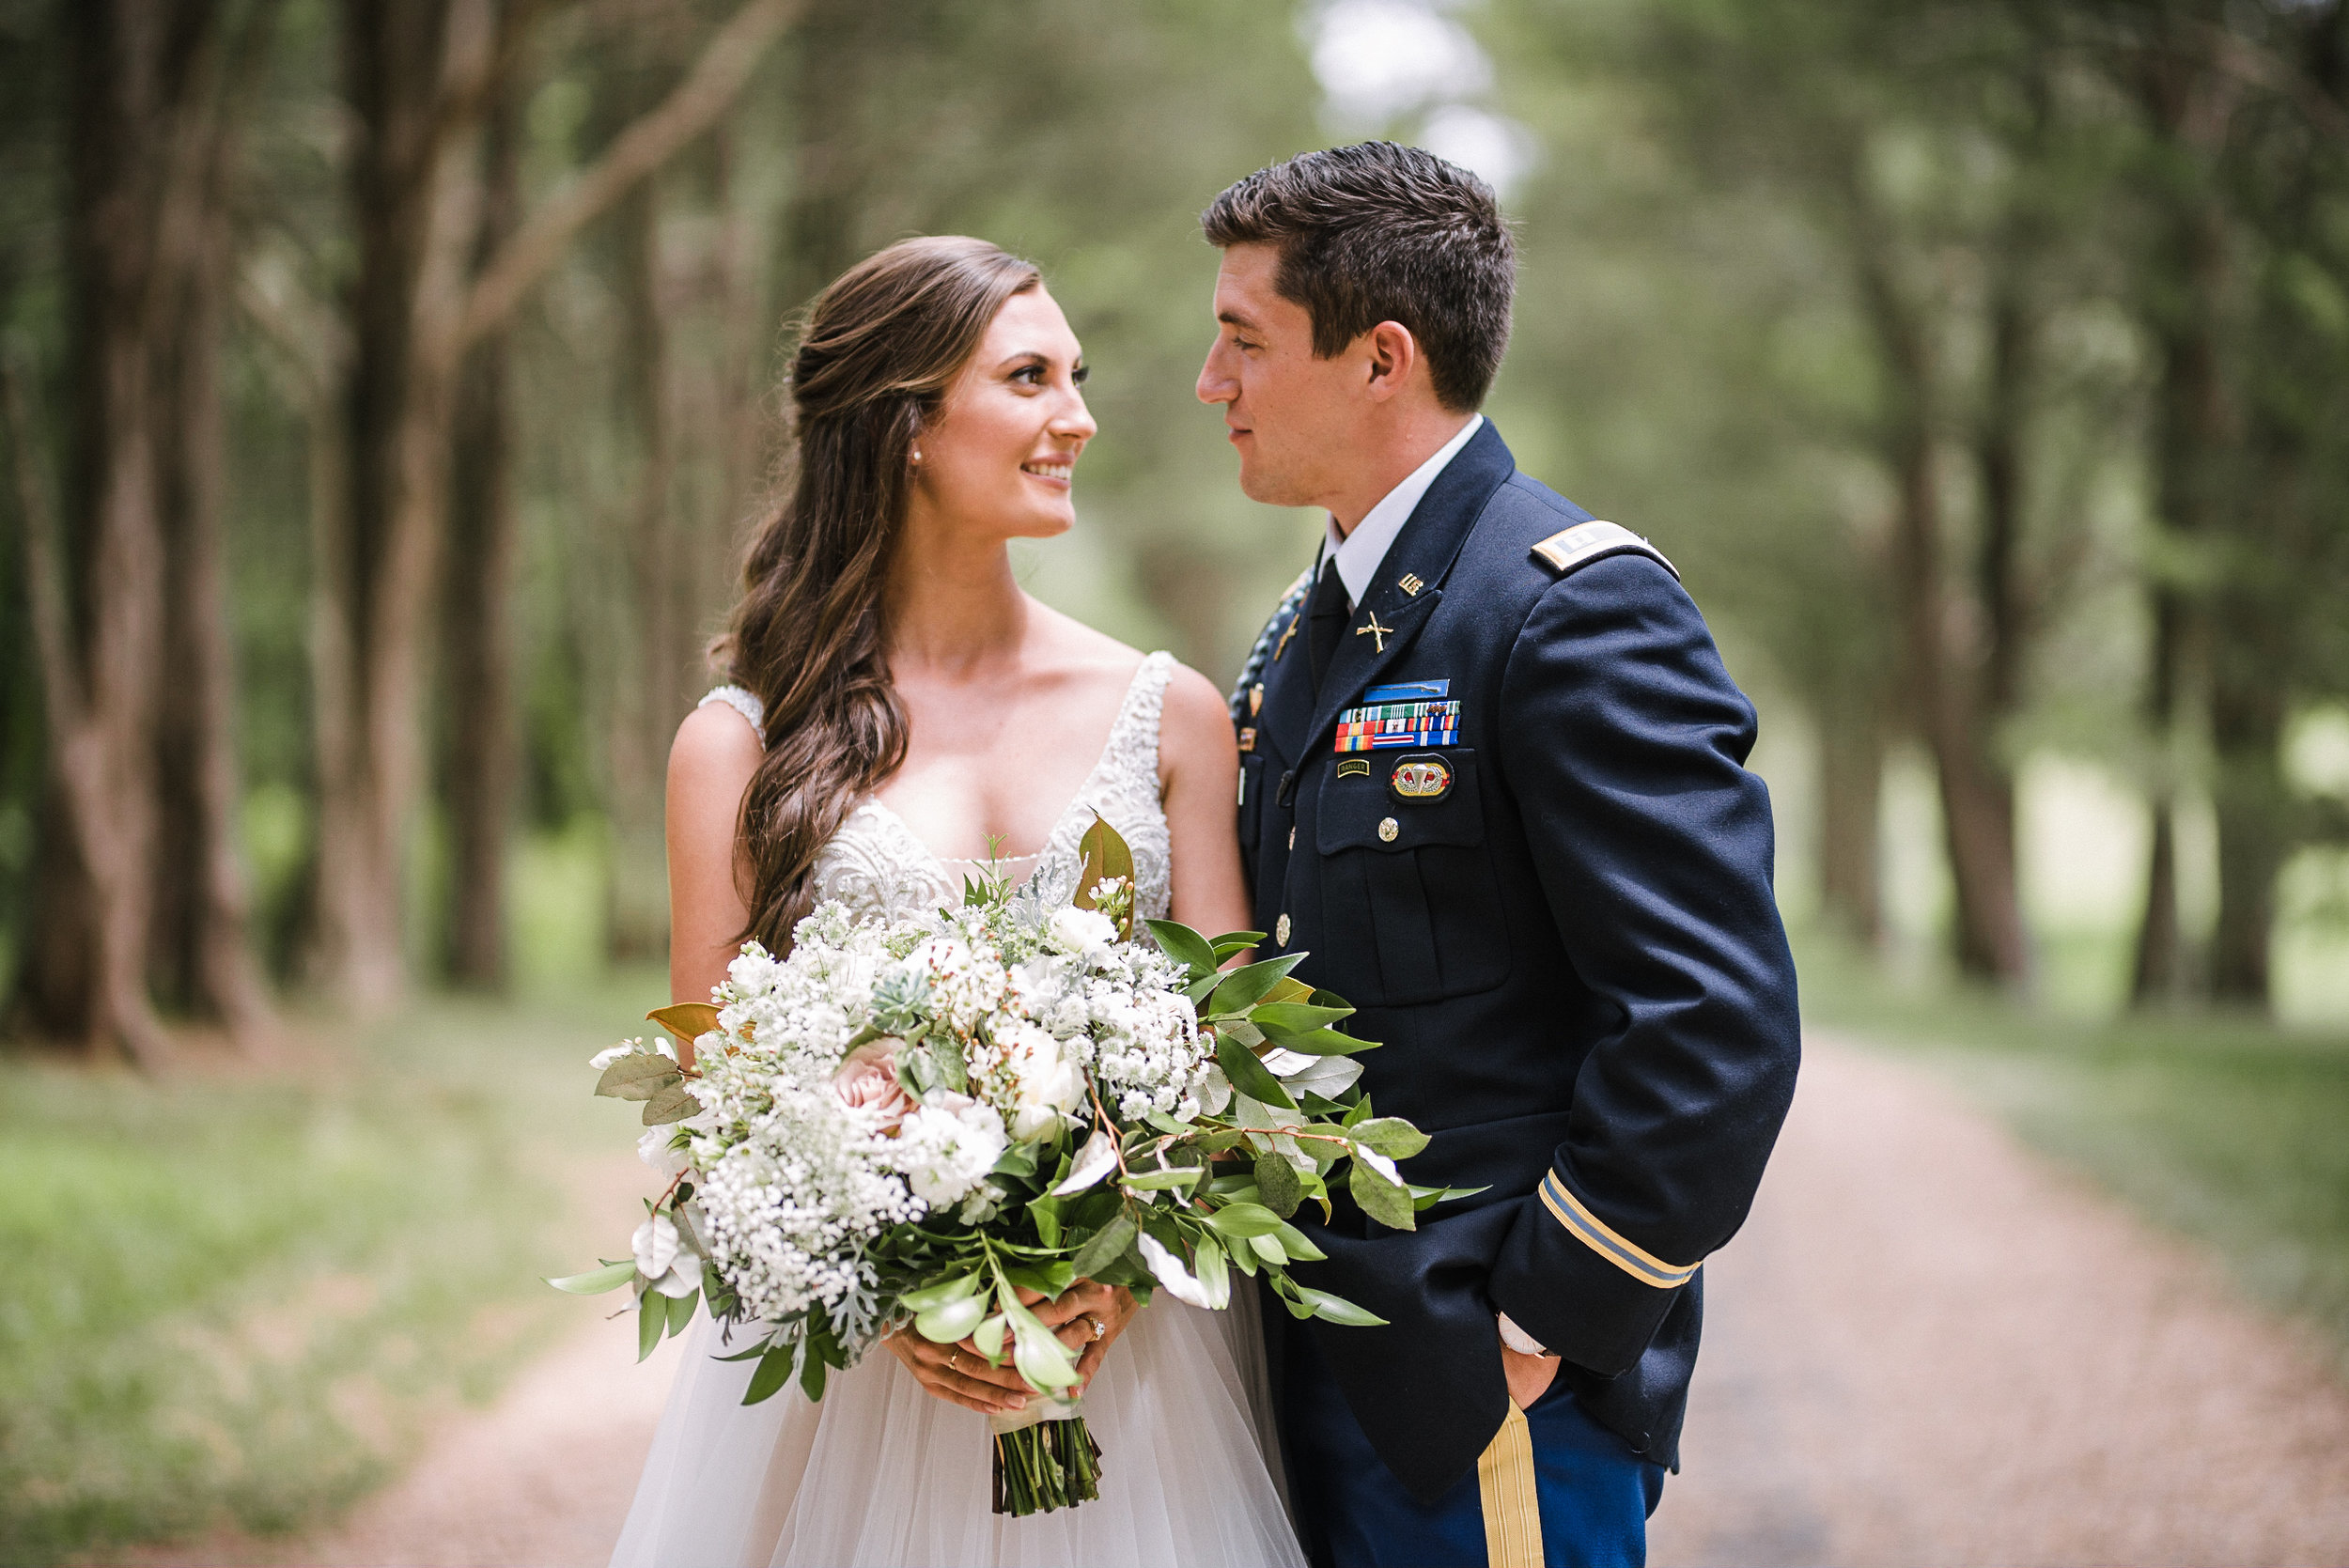 Dreamy setting… - It's always so special when a groom wears his uniform for his wedding day! The blues of the uniform mix perfectly with the dusty blues of the bridesmaids dresses and gives us all the moody romantic feels!